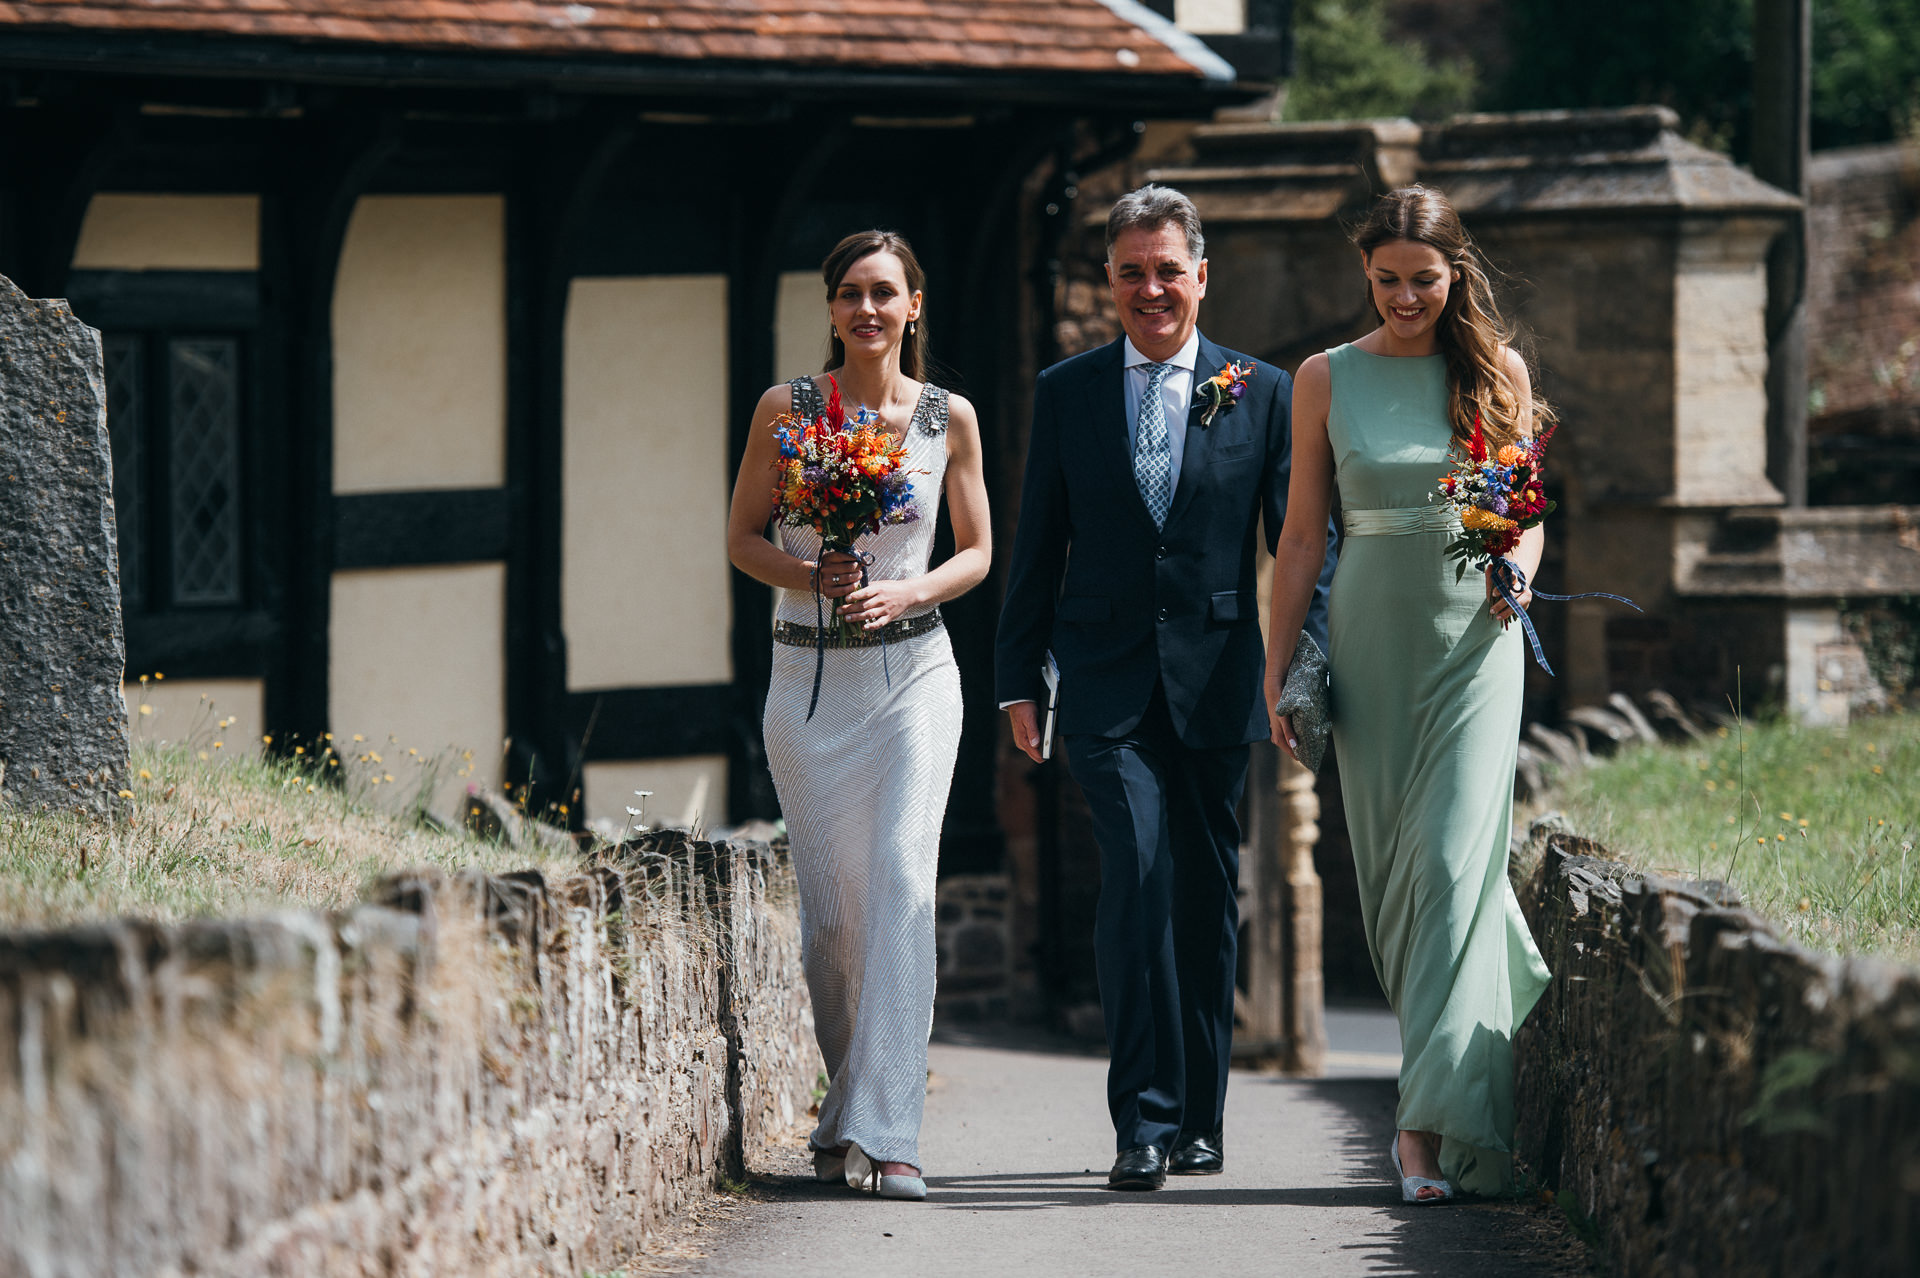 Dunster church wedding photography